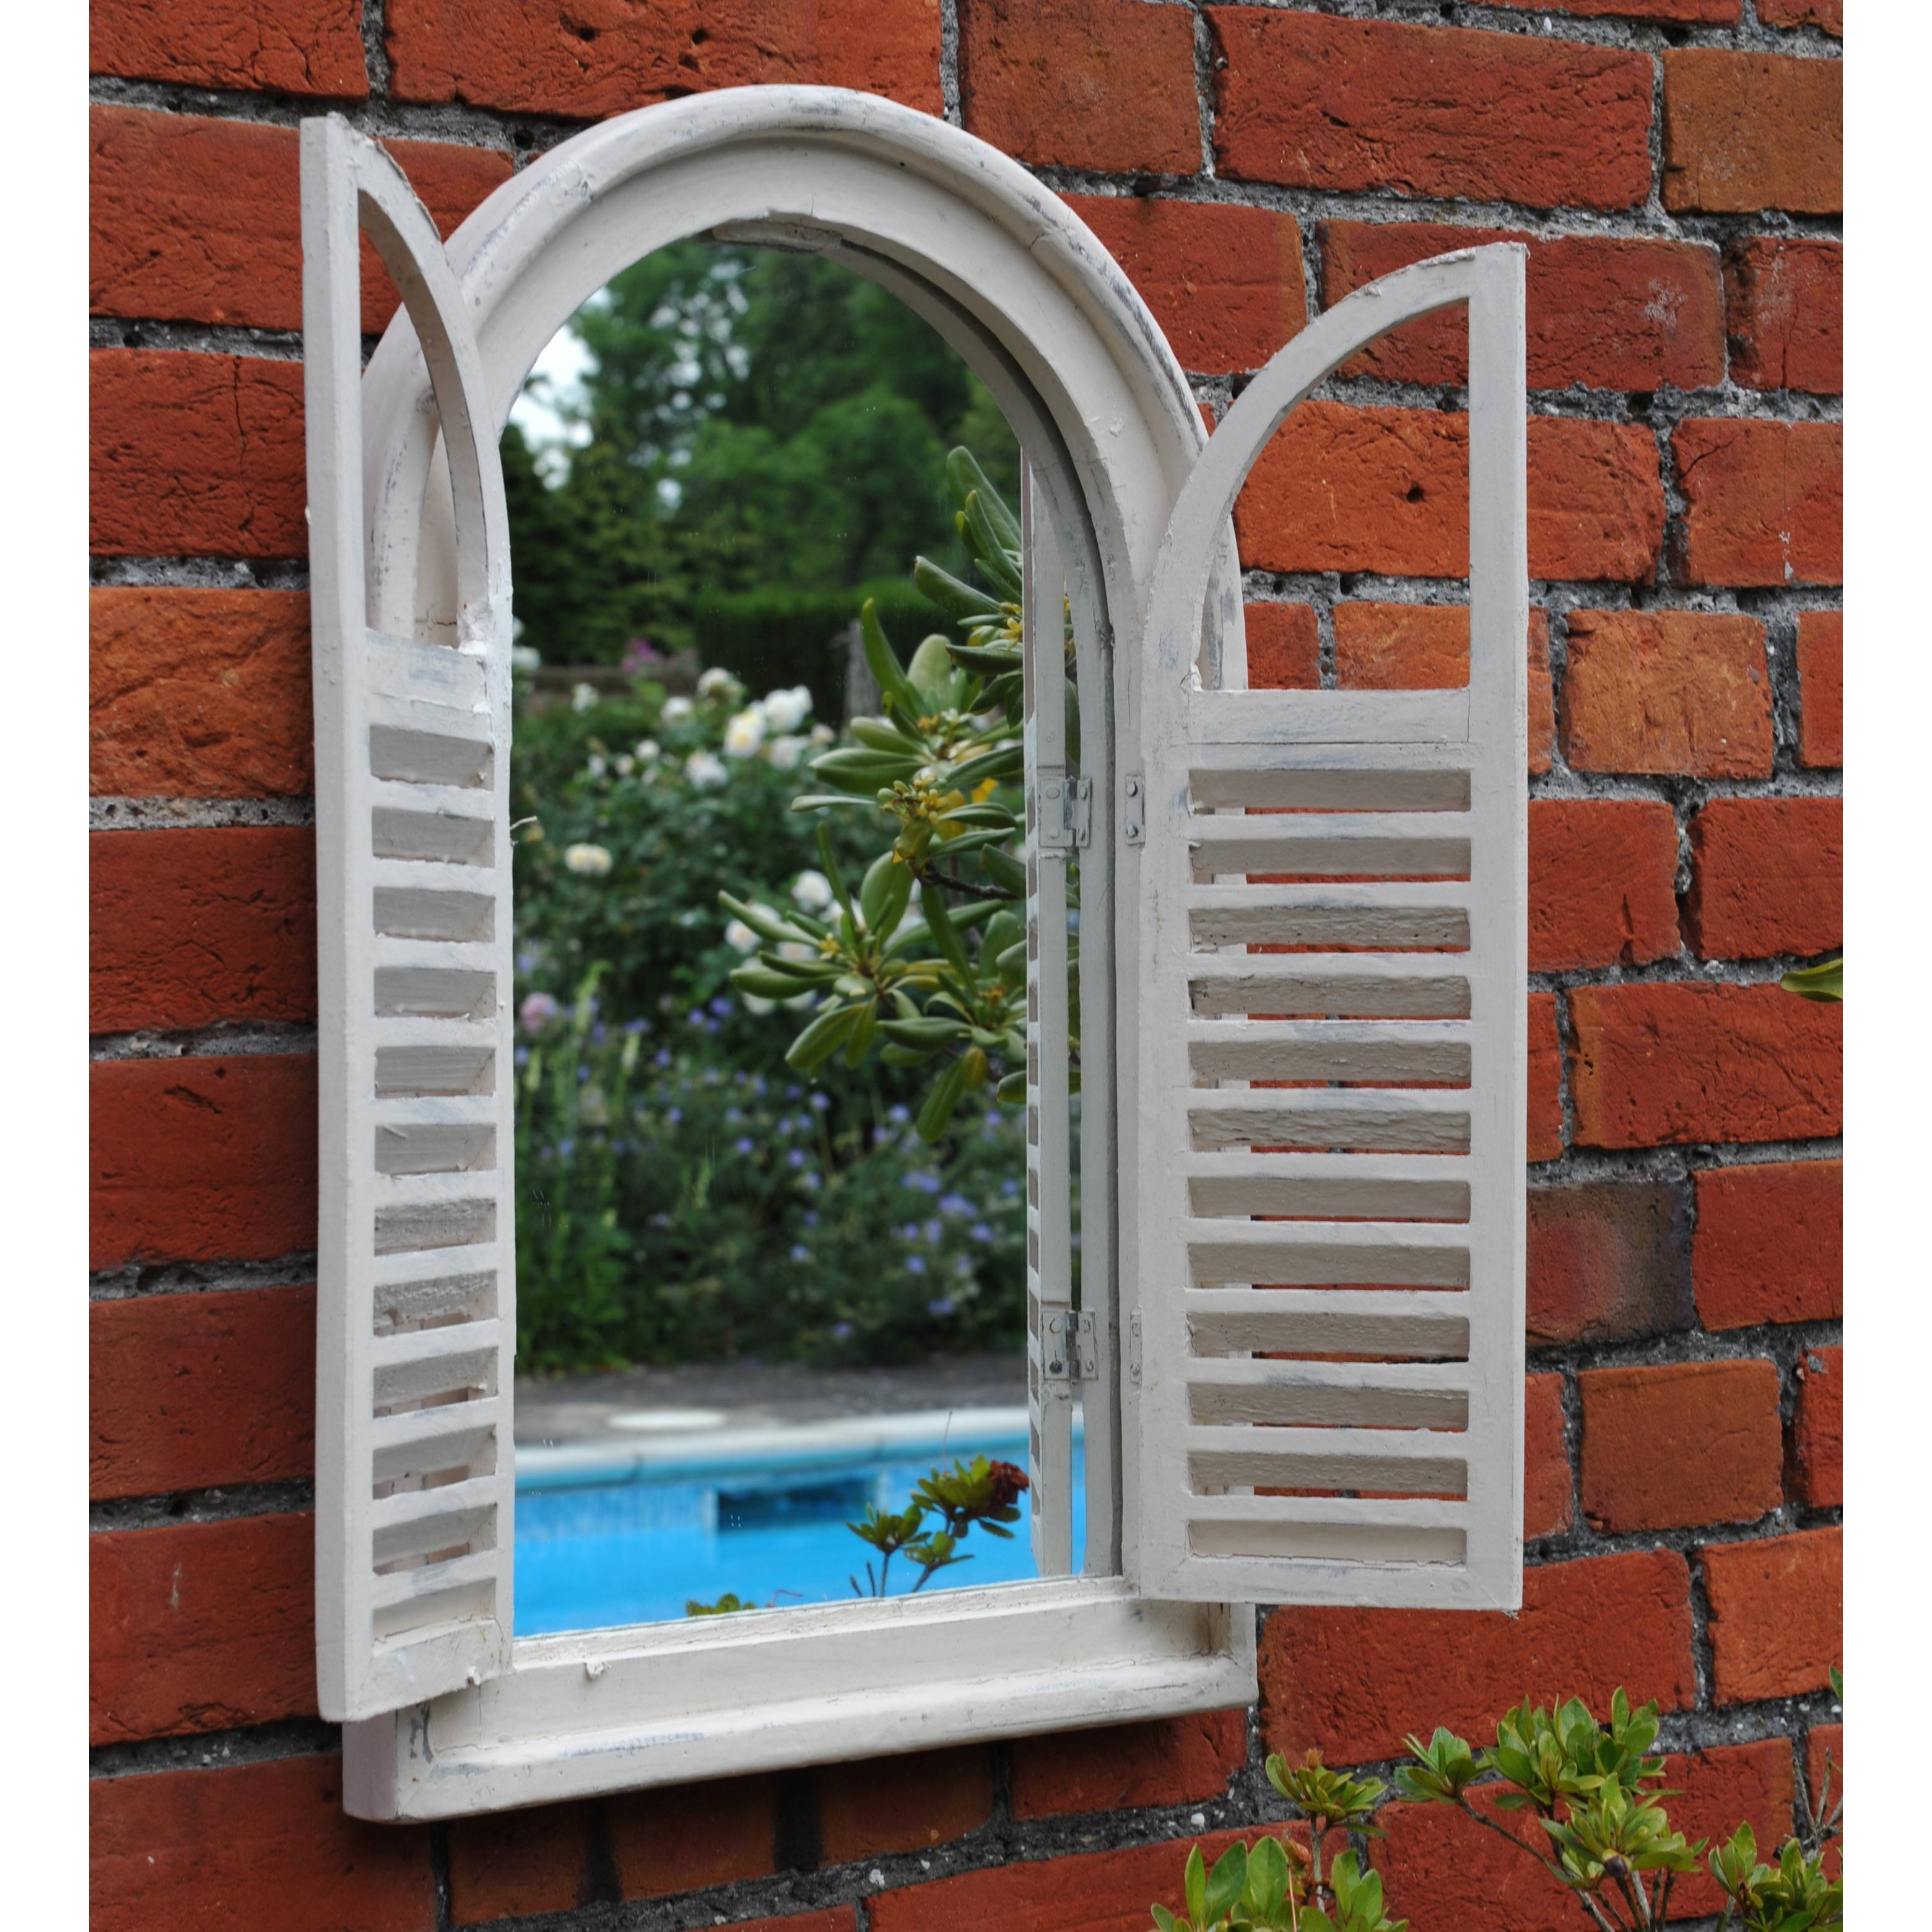 Buy Garden Wall Mirror With Shutters pertaining to Wall Mirrors With Shutters (Image 8 of 25)